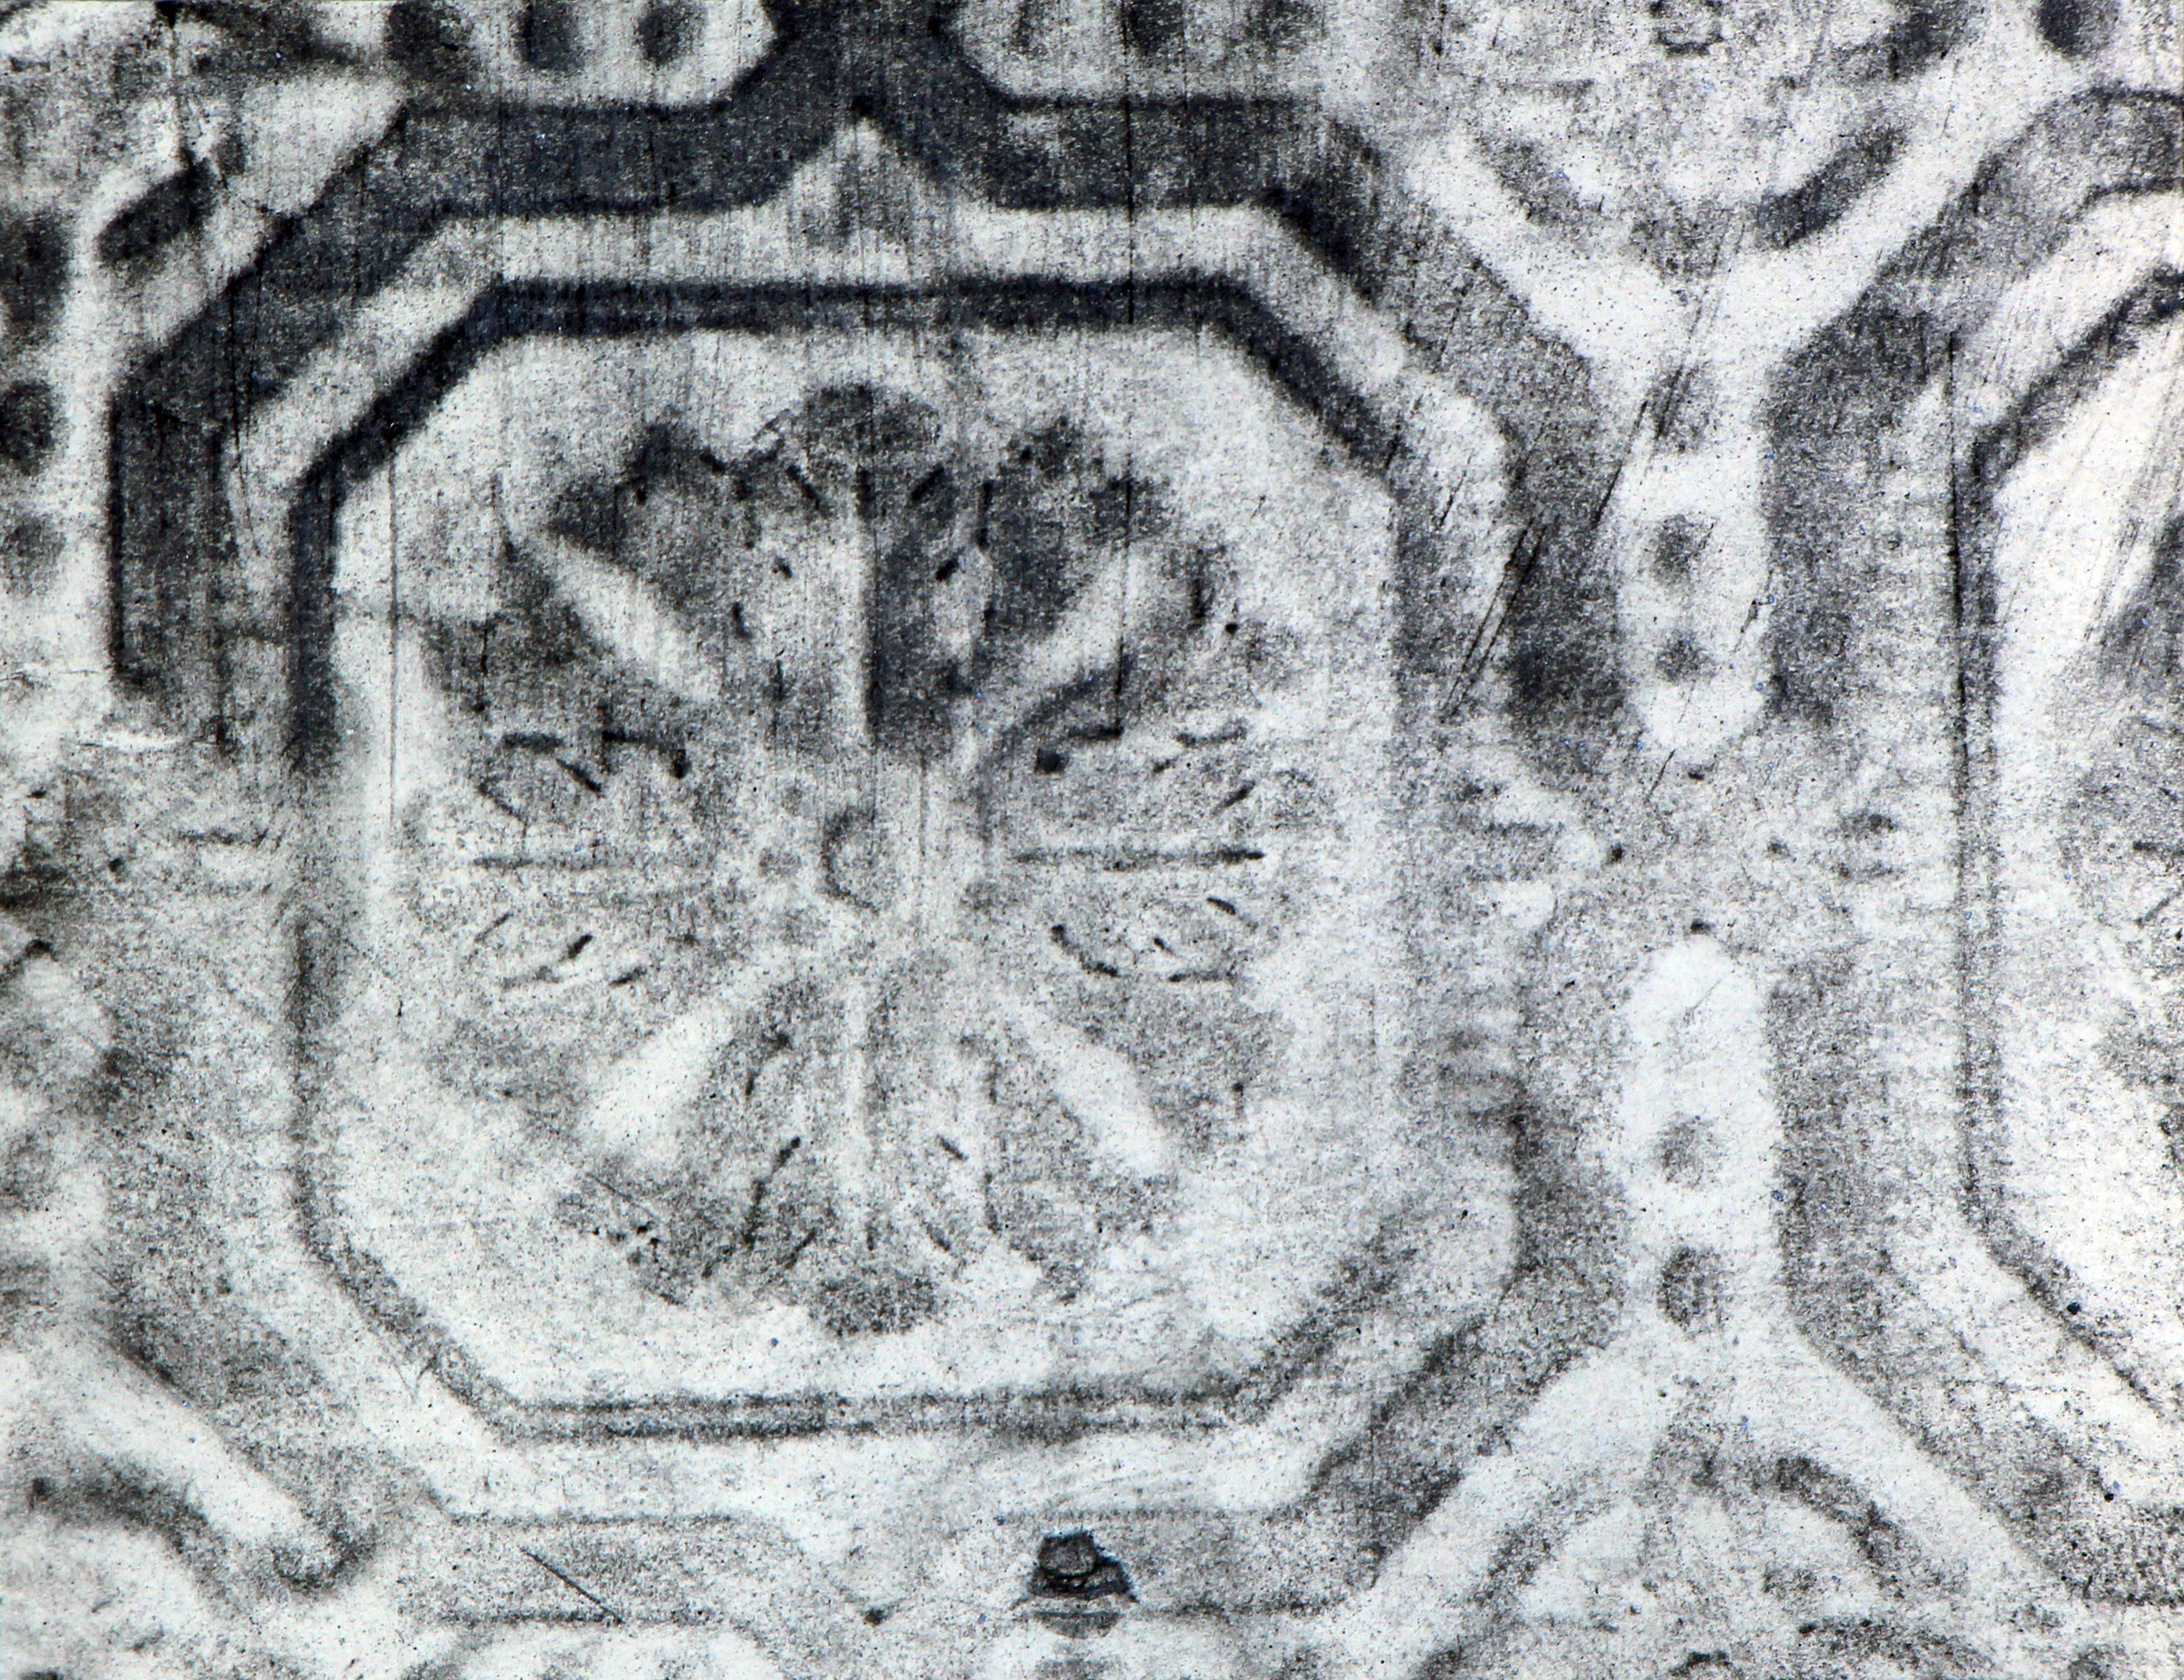 Tony Lewis    untitled , 2014  graphite powder on wallpaper  approximately 5.5 x 7 inches  edition of 10